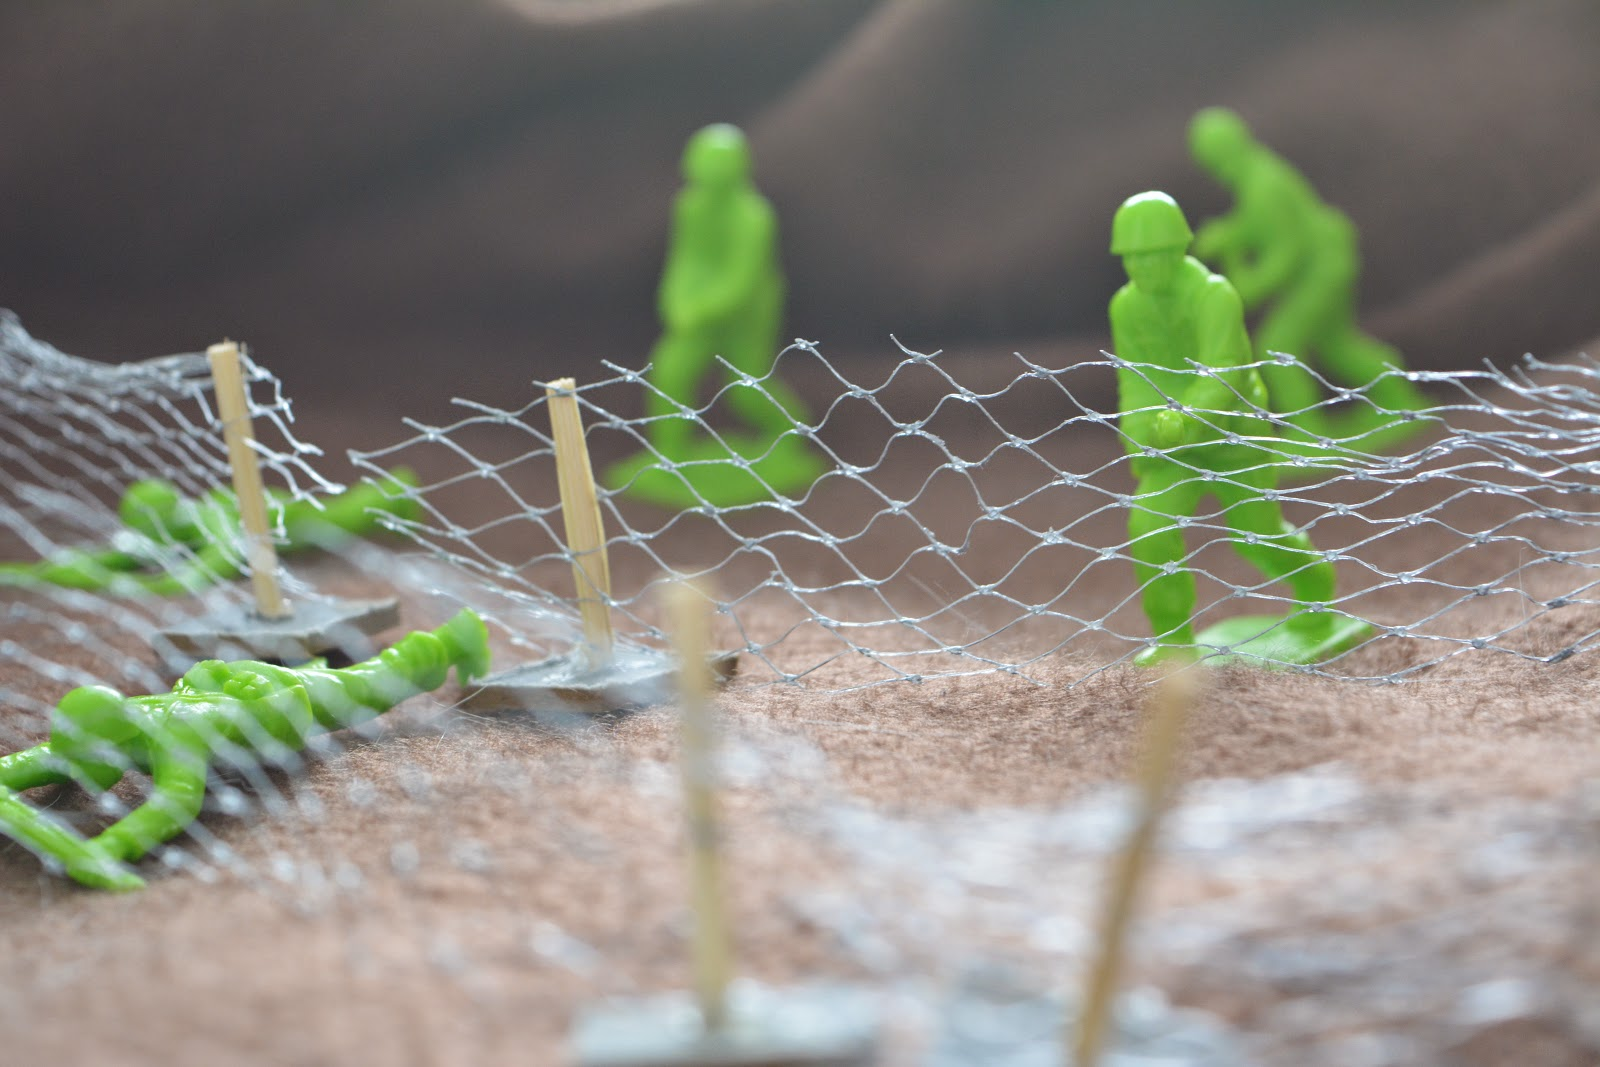 Mini barbed wire